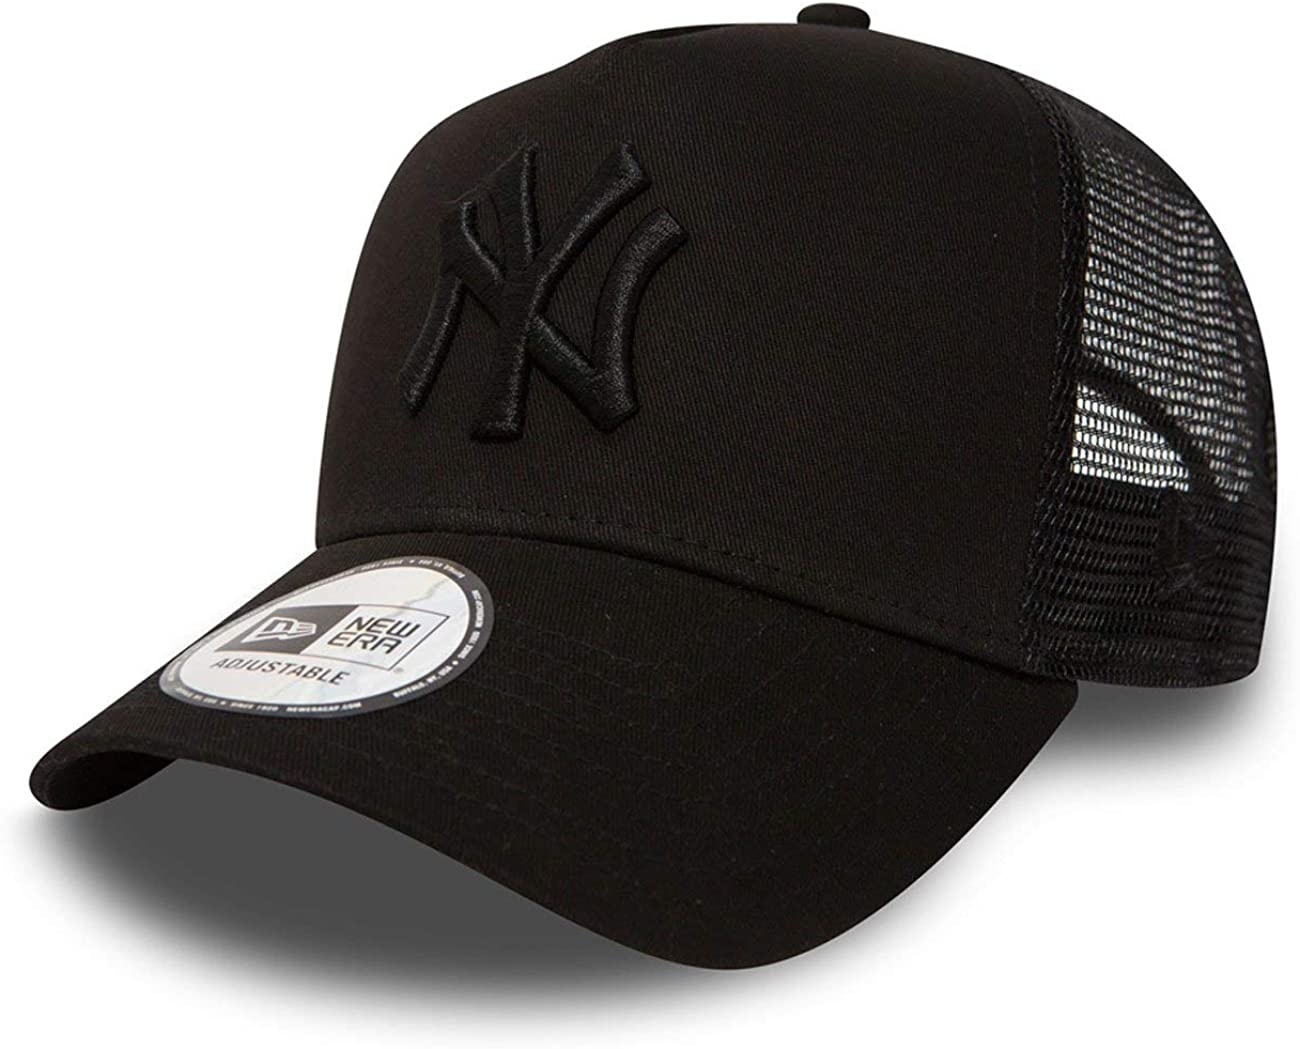 New Era Trucker Mesh Cap im Bundle mit UD Bandana New York Yankees Los Angeles Dodgers